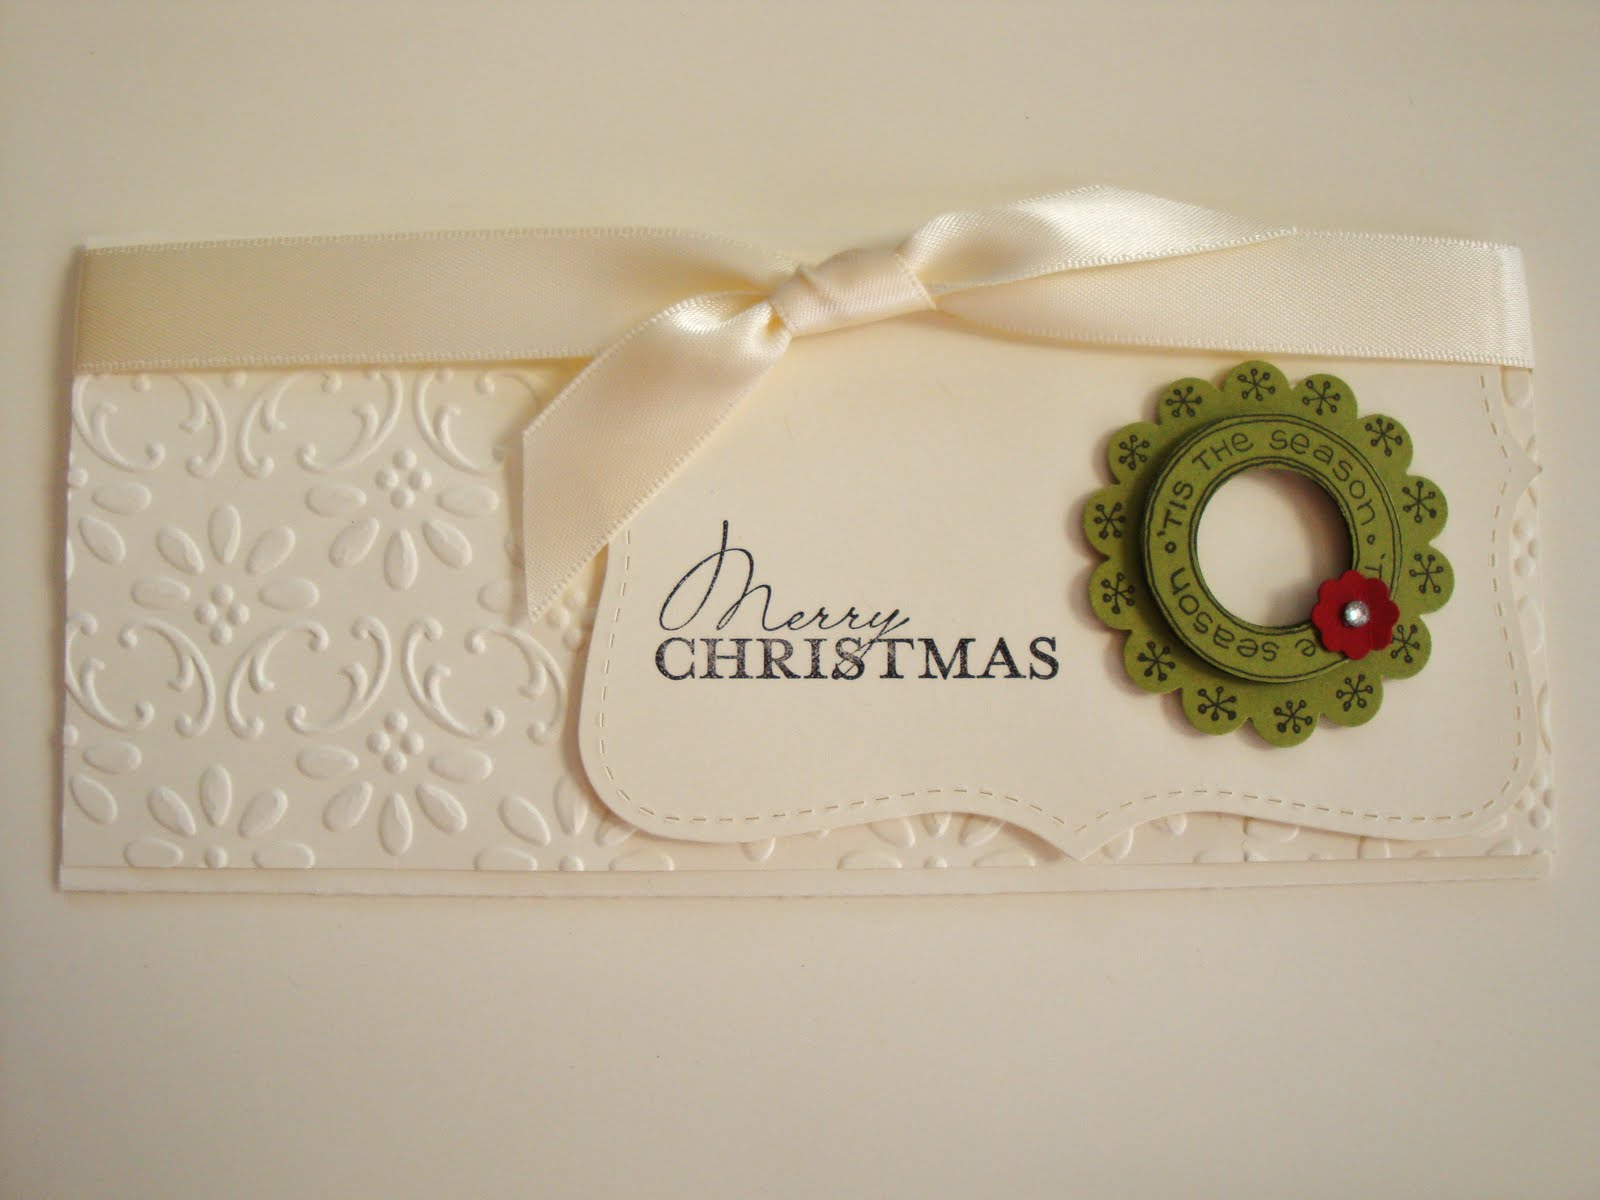 Gorgeous gift card/money holder | Cards from SU Christmas | Pinterest